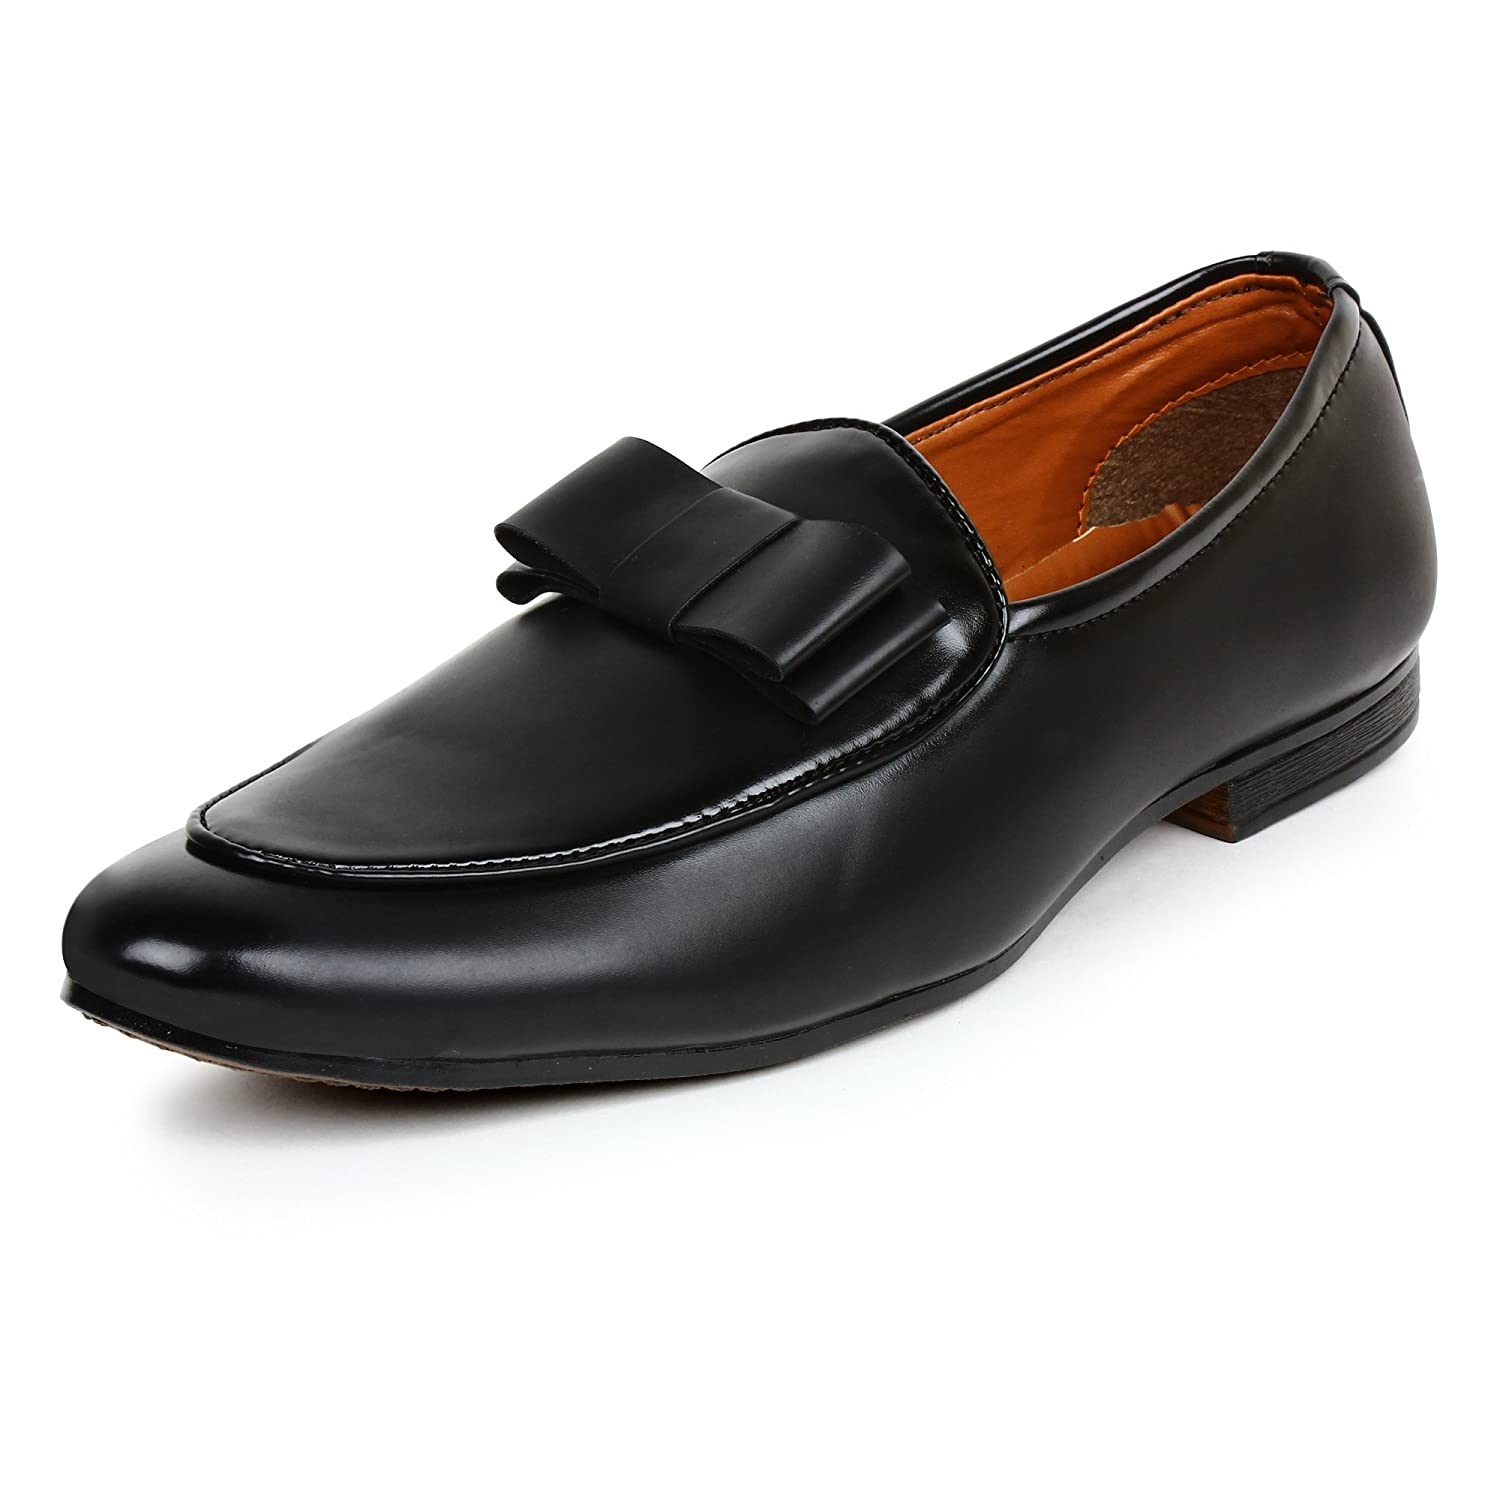 66e93b380cf931 BUWCH Men's Black Synthetic Leather Casual Loafer and Mocassins: Buy Online  at Low Prices in India - Amazon.in